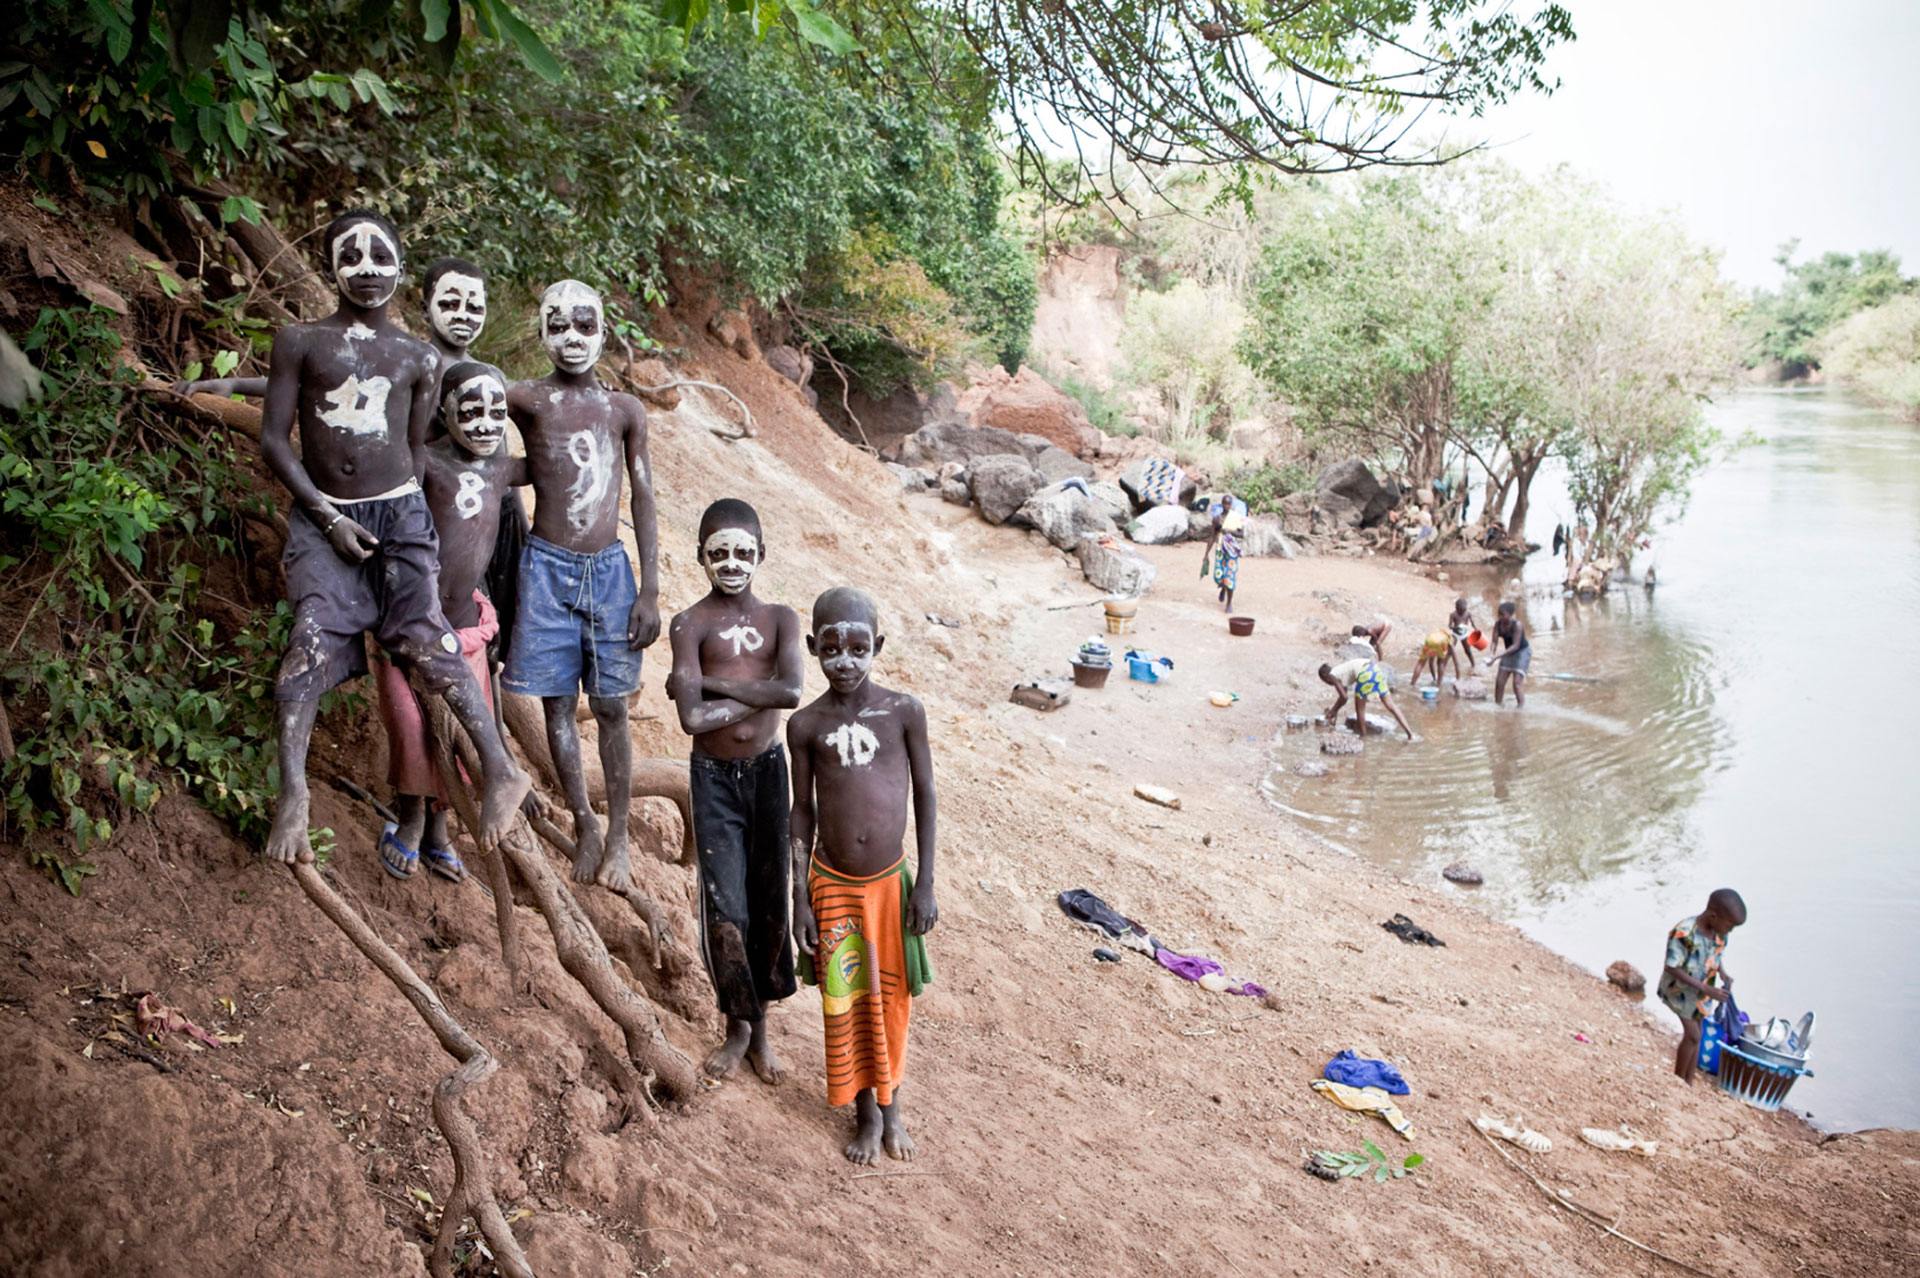 ©Jason Florio - Boys with painted faces on the banks of the River Gambia, Senegal